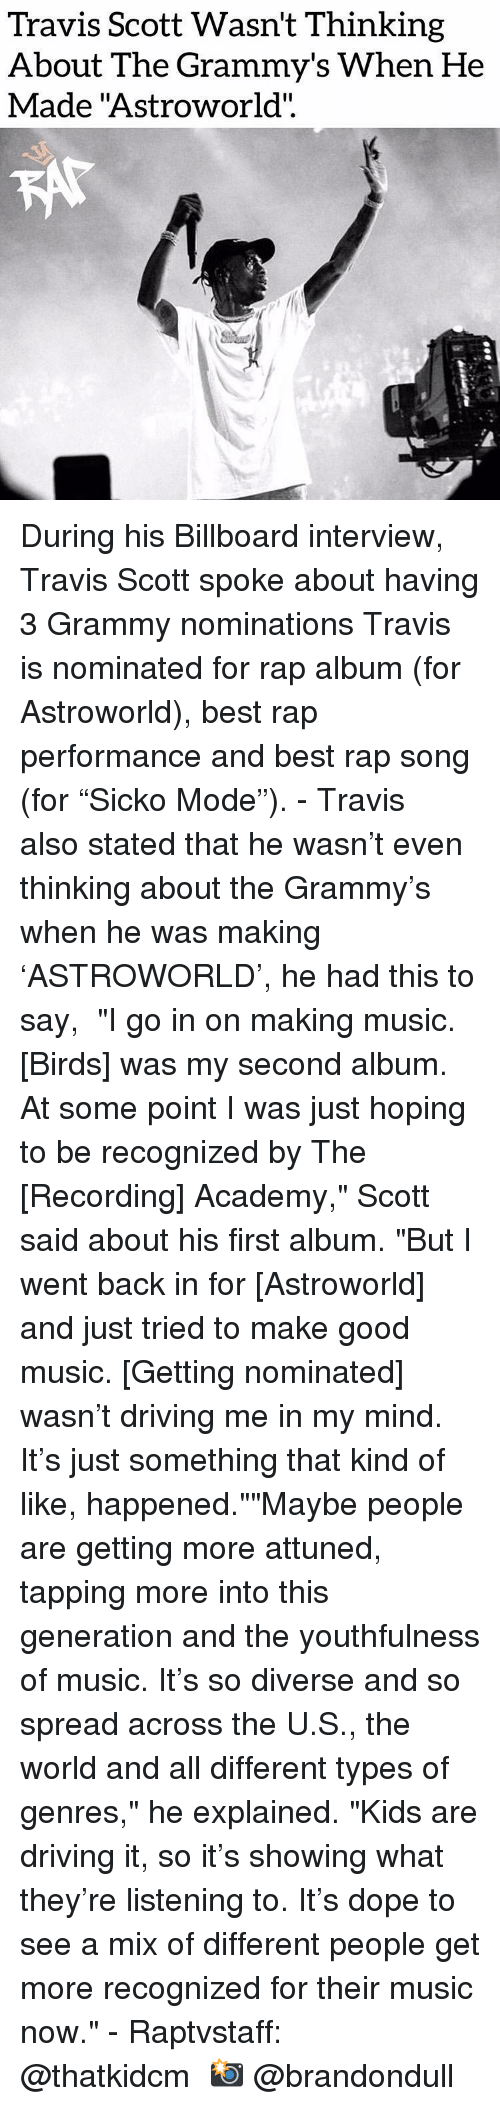 "Different Types Of: Travis Scott Wasn't Thinking  About The Grammy's When He  Made ""Astroworld"".  CO During his Billboard interview, Travis Scott spoke about having 3 Grammy nominations Travis is nominated for rap album (for Astroworld), best rap performance and best rap song (for ""Sicko Mode"").⁣ -⁣ Travis also stated that he wasn't even thinking about the Grammy's when he was making 'ASTROWORLD', he had this to say,⁣ ⁣ ""I go in on making music. [Birds] was my second album. At some point I was just hoping to be recognized by The [Recording] Academy,"" Scott said about his first album. ""But I went back in for [Astroworld] and just tried to make good music. [Getting nominated] wasn't driving me in my mind. It's just something that kind of like, happened.""""Maybe people are getting more attuned, tapping more into this generation and the youthfulness of music. It's so diverse and so spread across the U.S., the world and all different types of genres,"" he explained. ""Kids are driving it, so it's showing what they're listening to. It's dope to see a mix of different people get more recognized for their music now.""⁣ -⁣ Raptvstaff: @thatkidcm⁣ 📸 @brandondull"